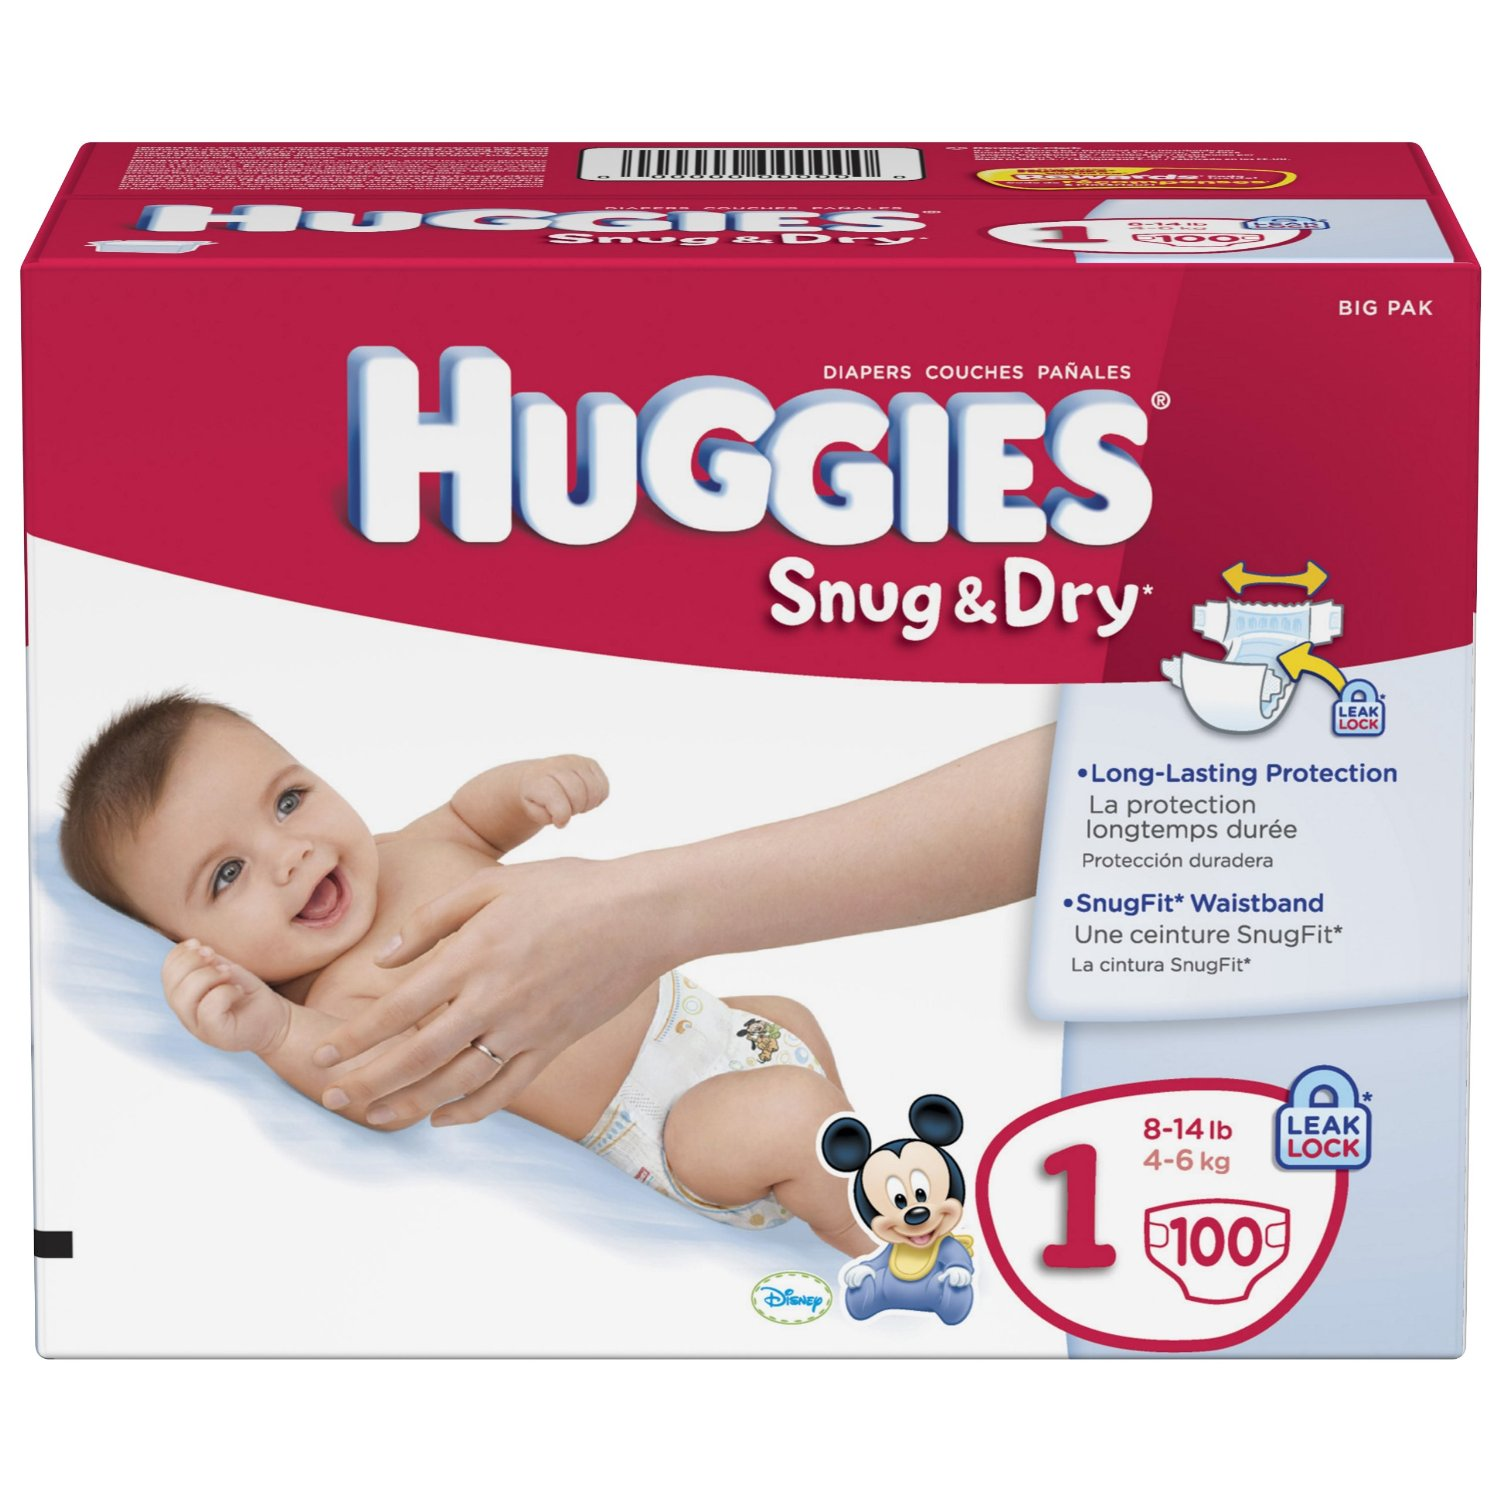 Get coupons for your favorite baby diapers and wipes products from Huggies®. Save money and earn Rewards Points for your Huggies® purchases.